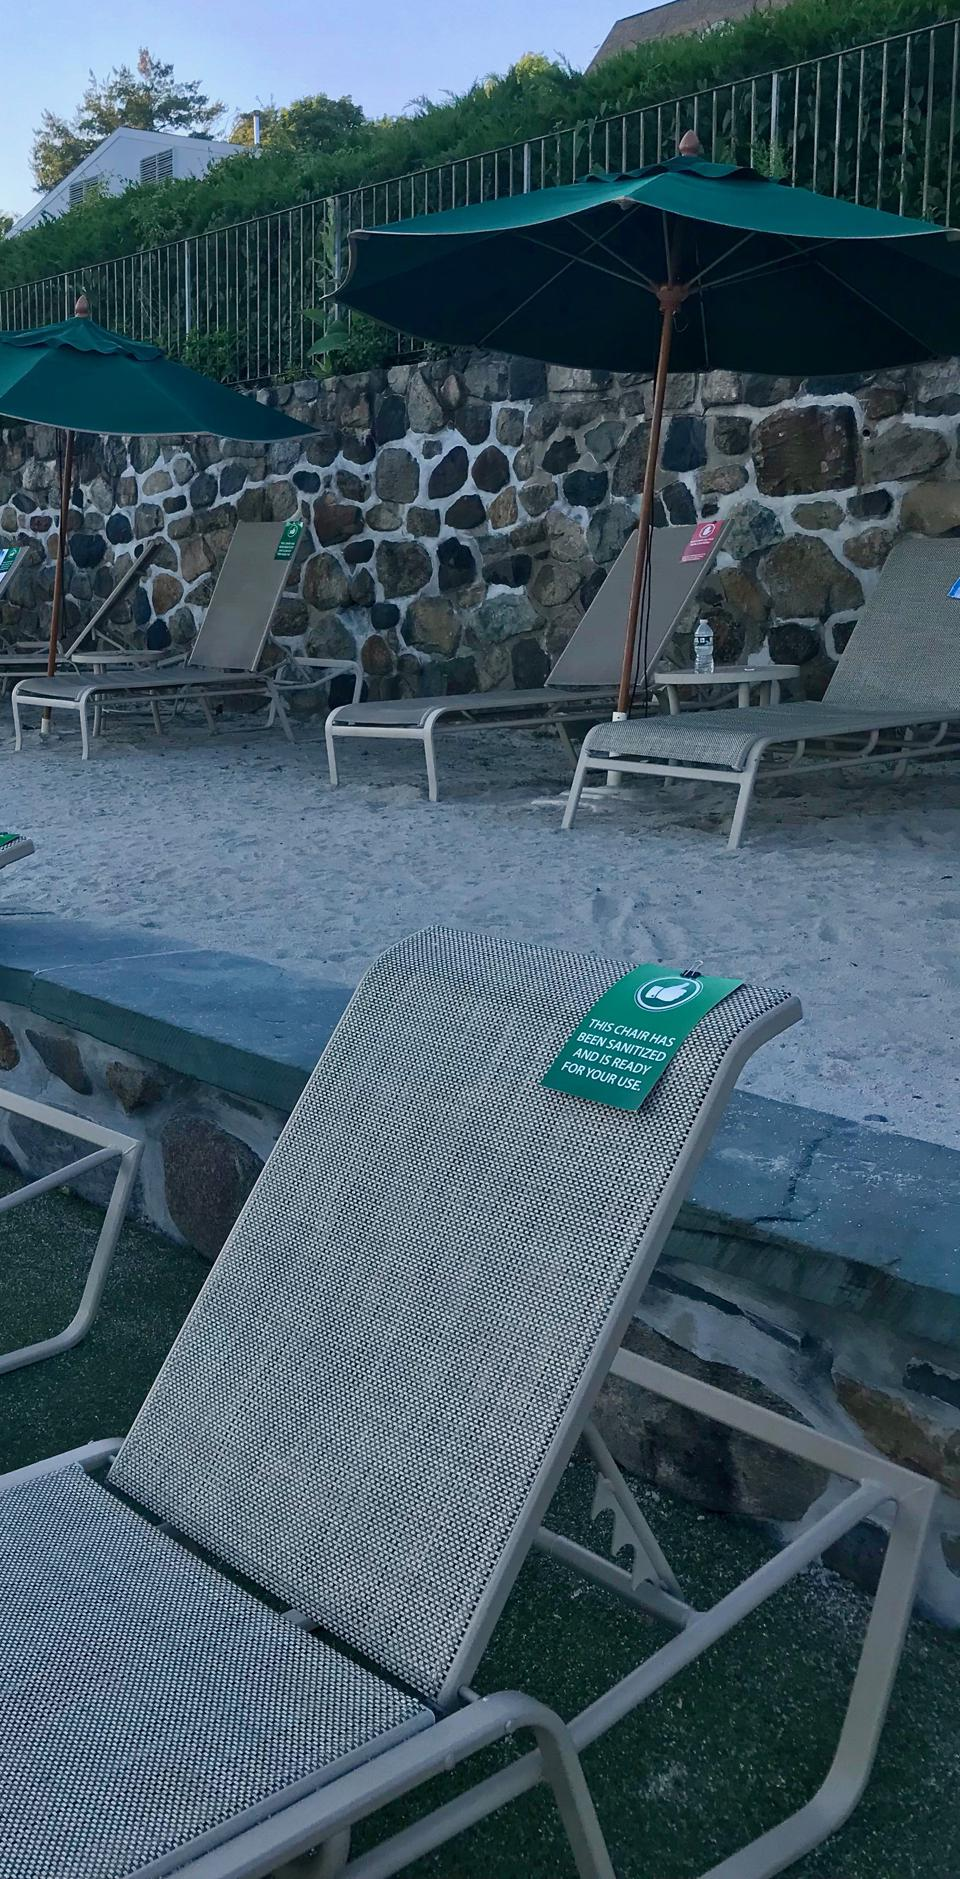 a lounge chair with a green card that says the chair has been sanitized